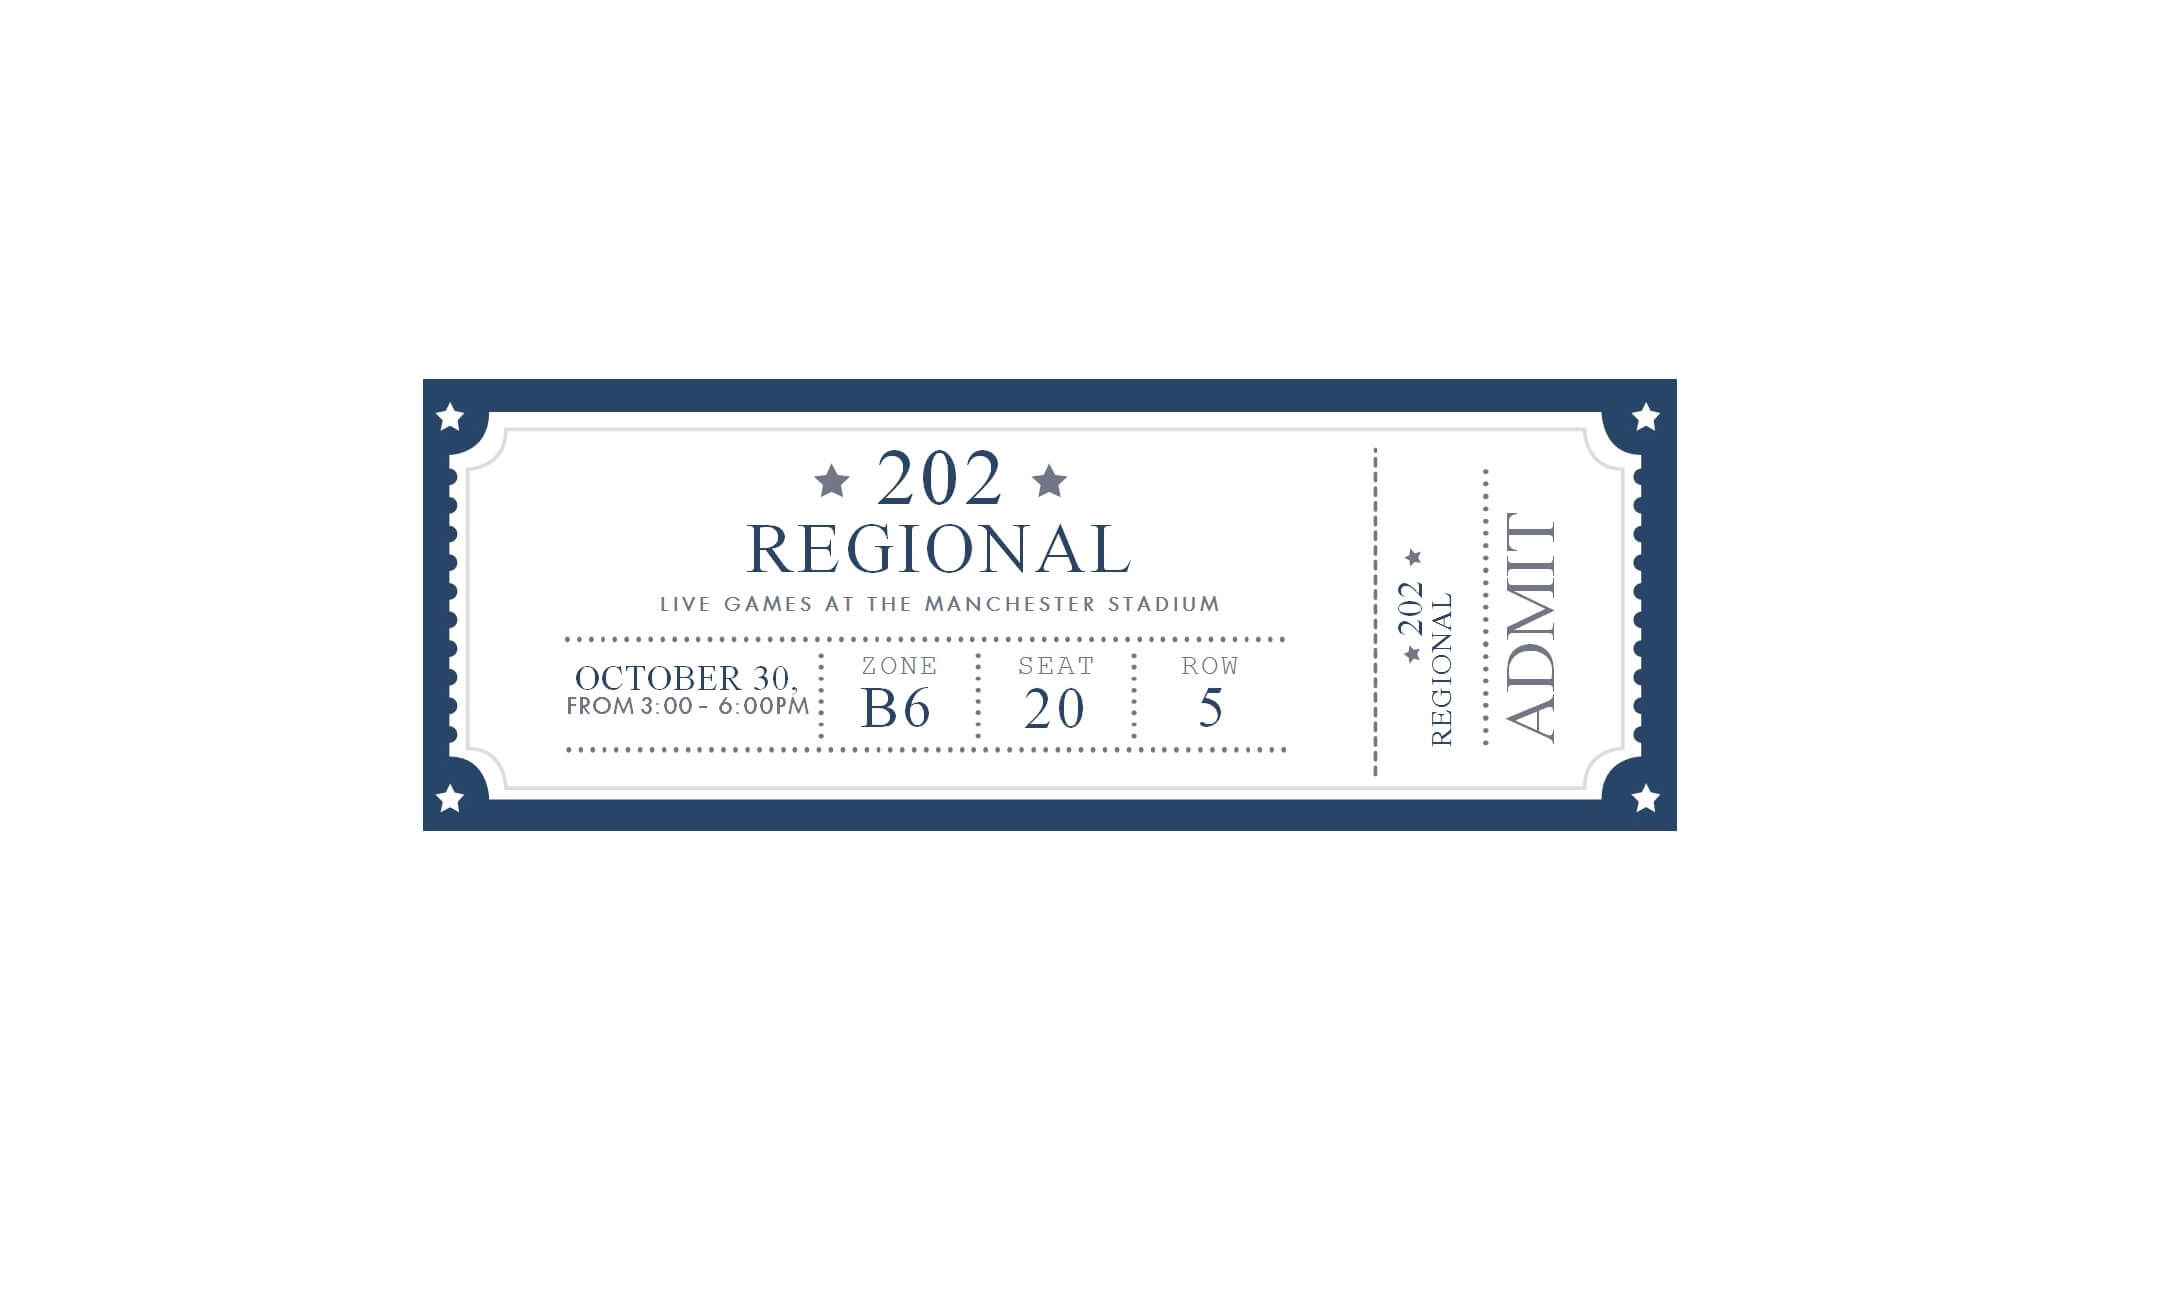 22 Free Event Ticket Templates (Ms Word) ᐅ Template Lab for Blank Admission Ticket Template